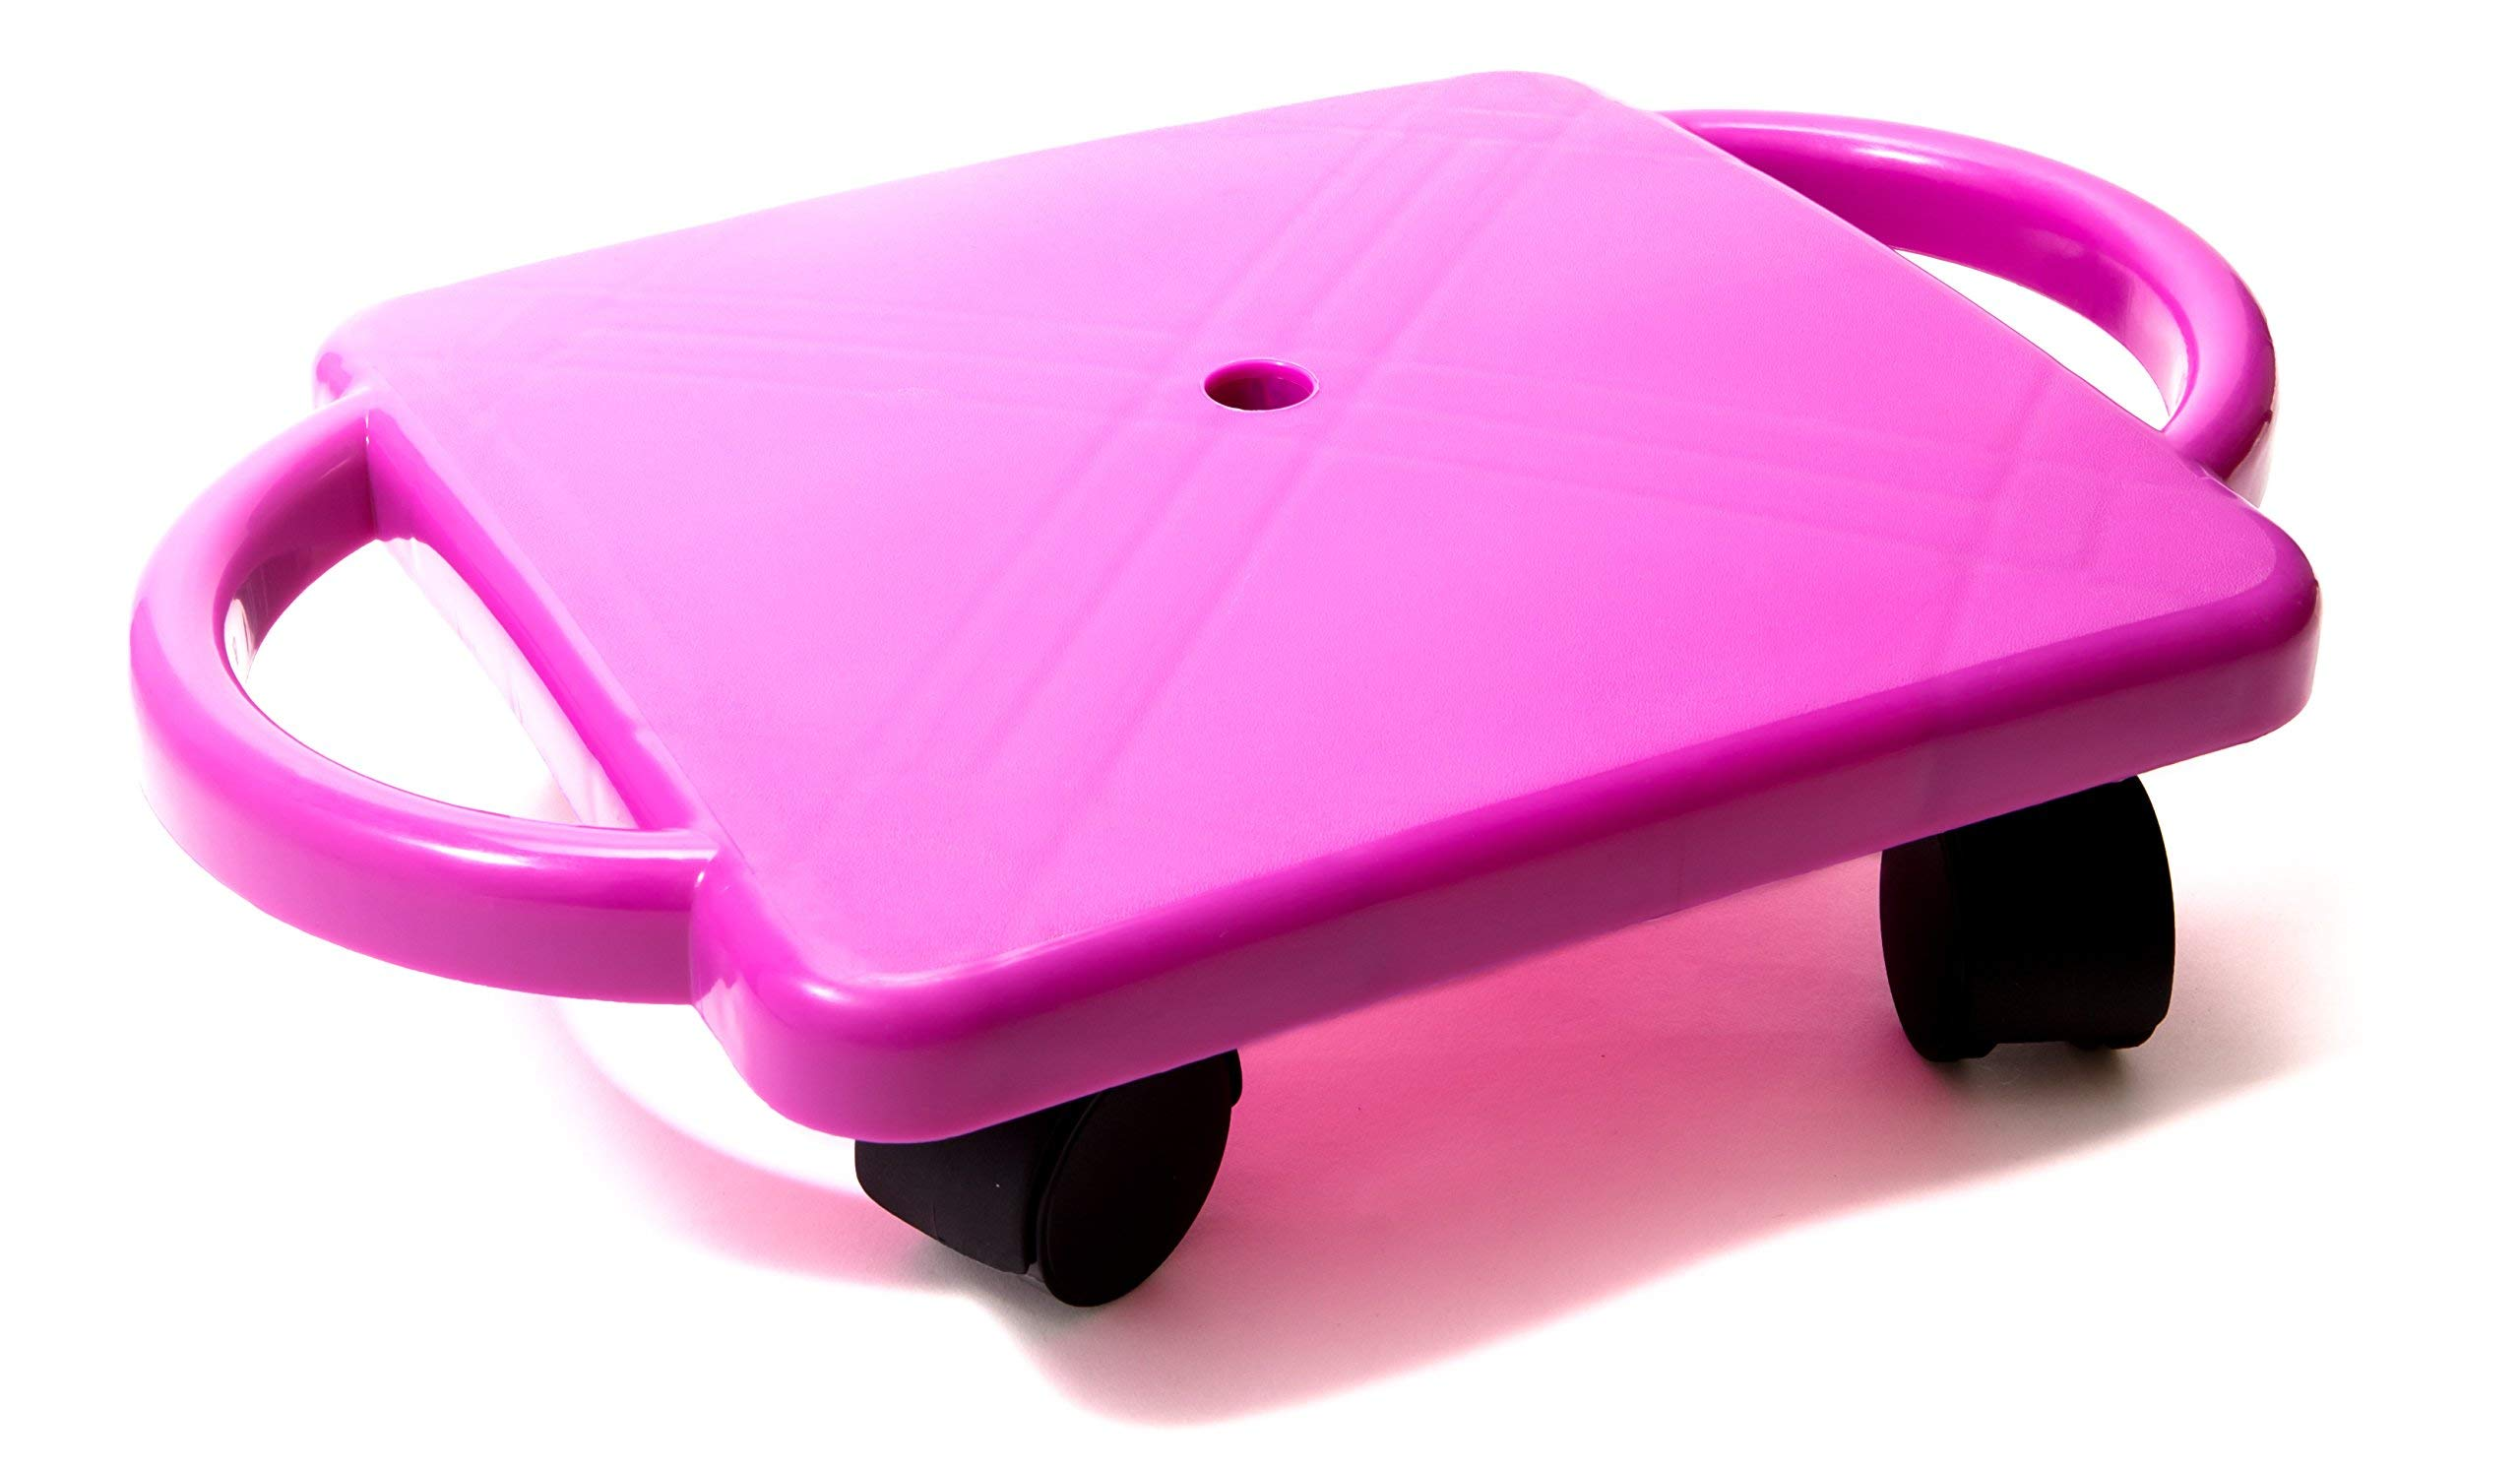 Educational Manual Plastic Scooter Board with Safety Handles | 16'' x 11'' inches| Perfect for Kids, Teens, Adults | PE, Gym Class, Daycare, Preschool Development, Games, Camps (Purple) by SHOT TAKER CO. EST. 2017